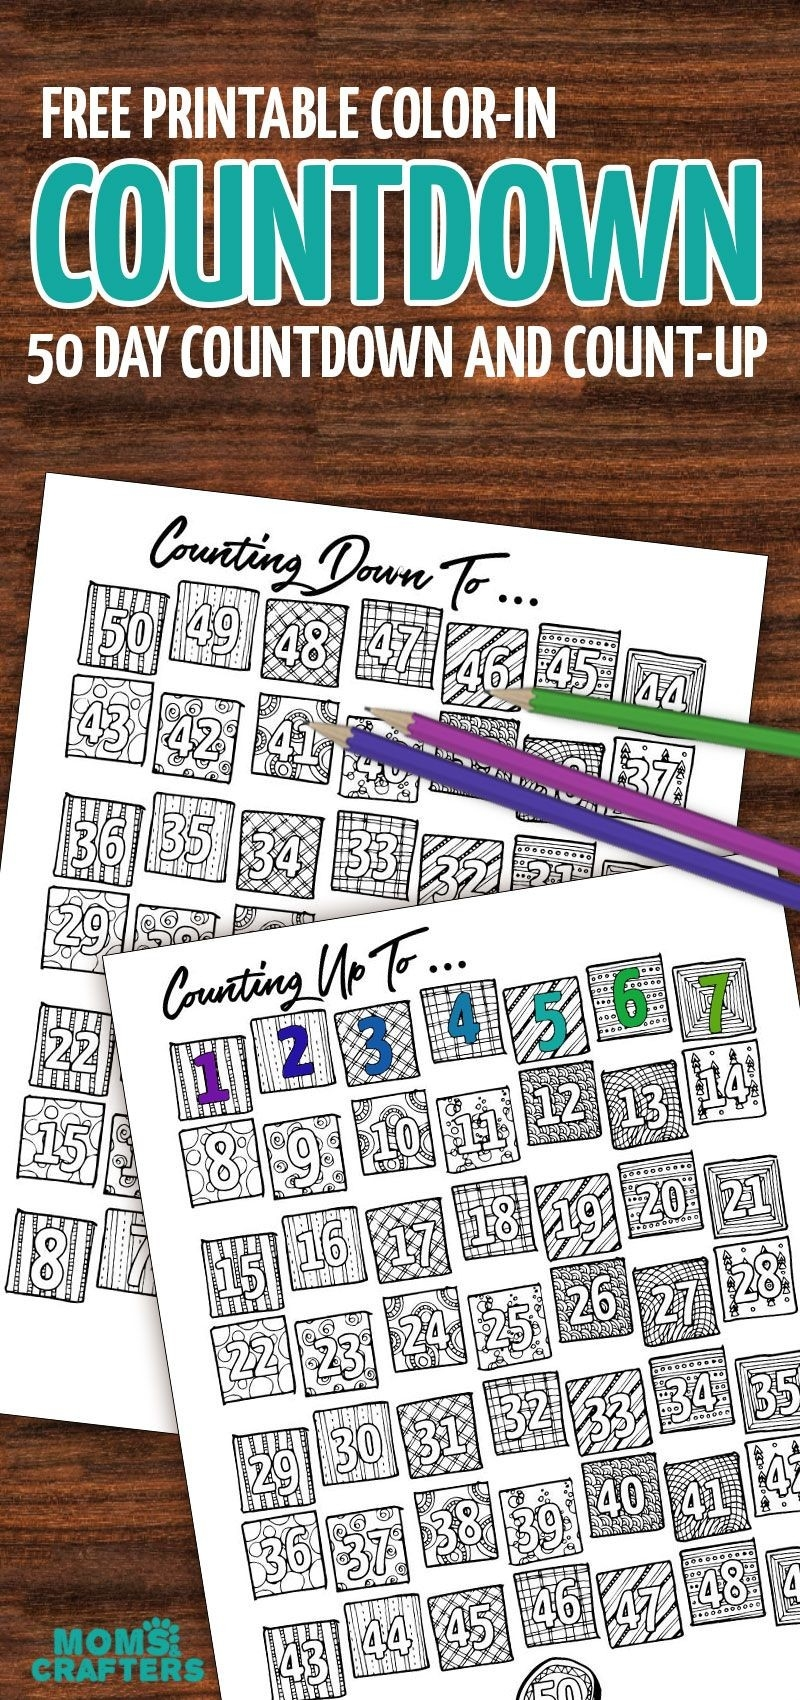 Grab This Fun Color-In Countdown And Progress Tracker-Holiday Countdown Template Printable